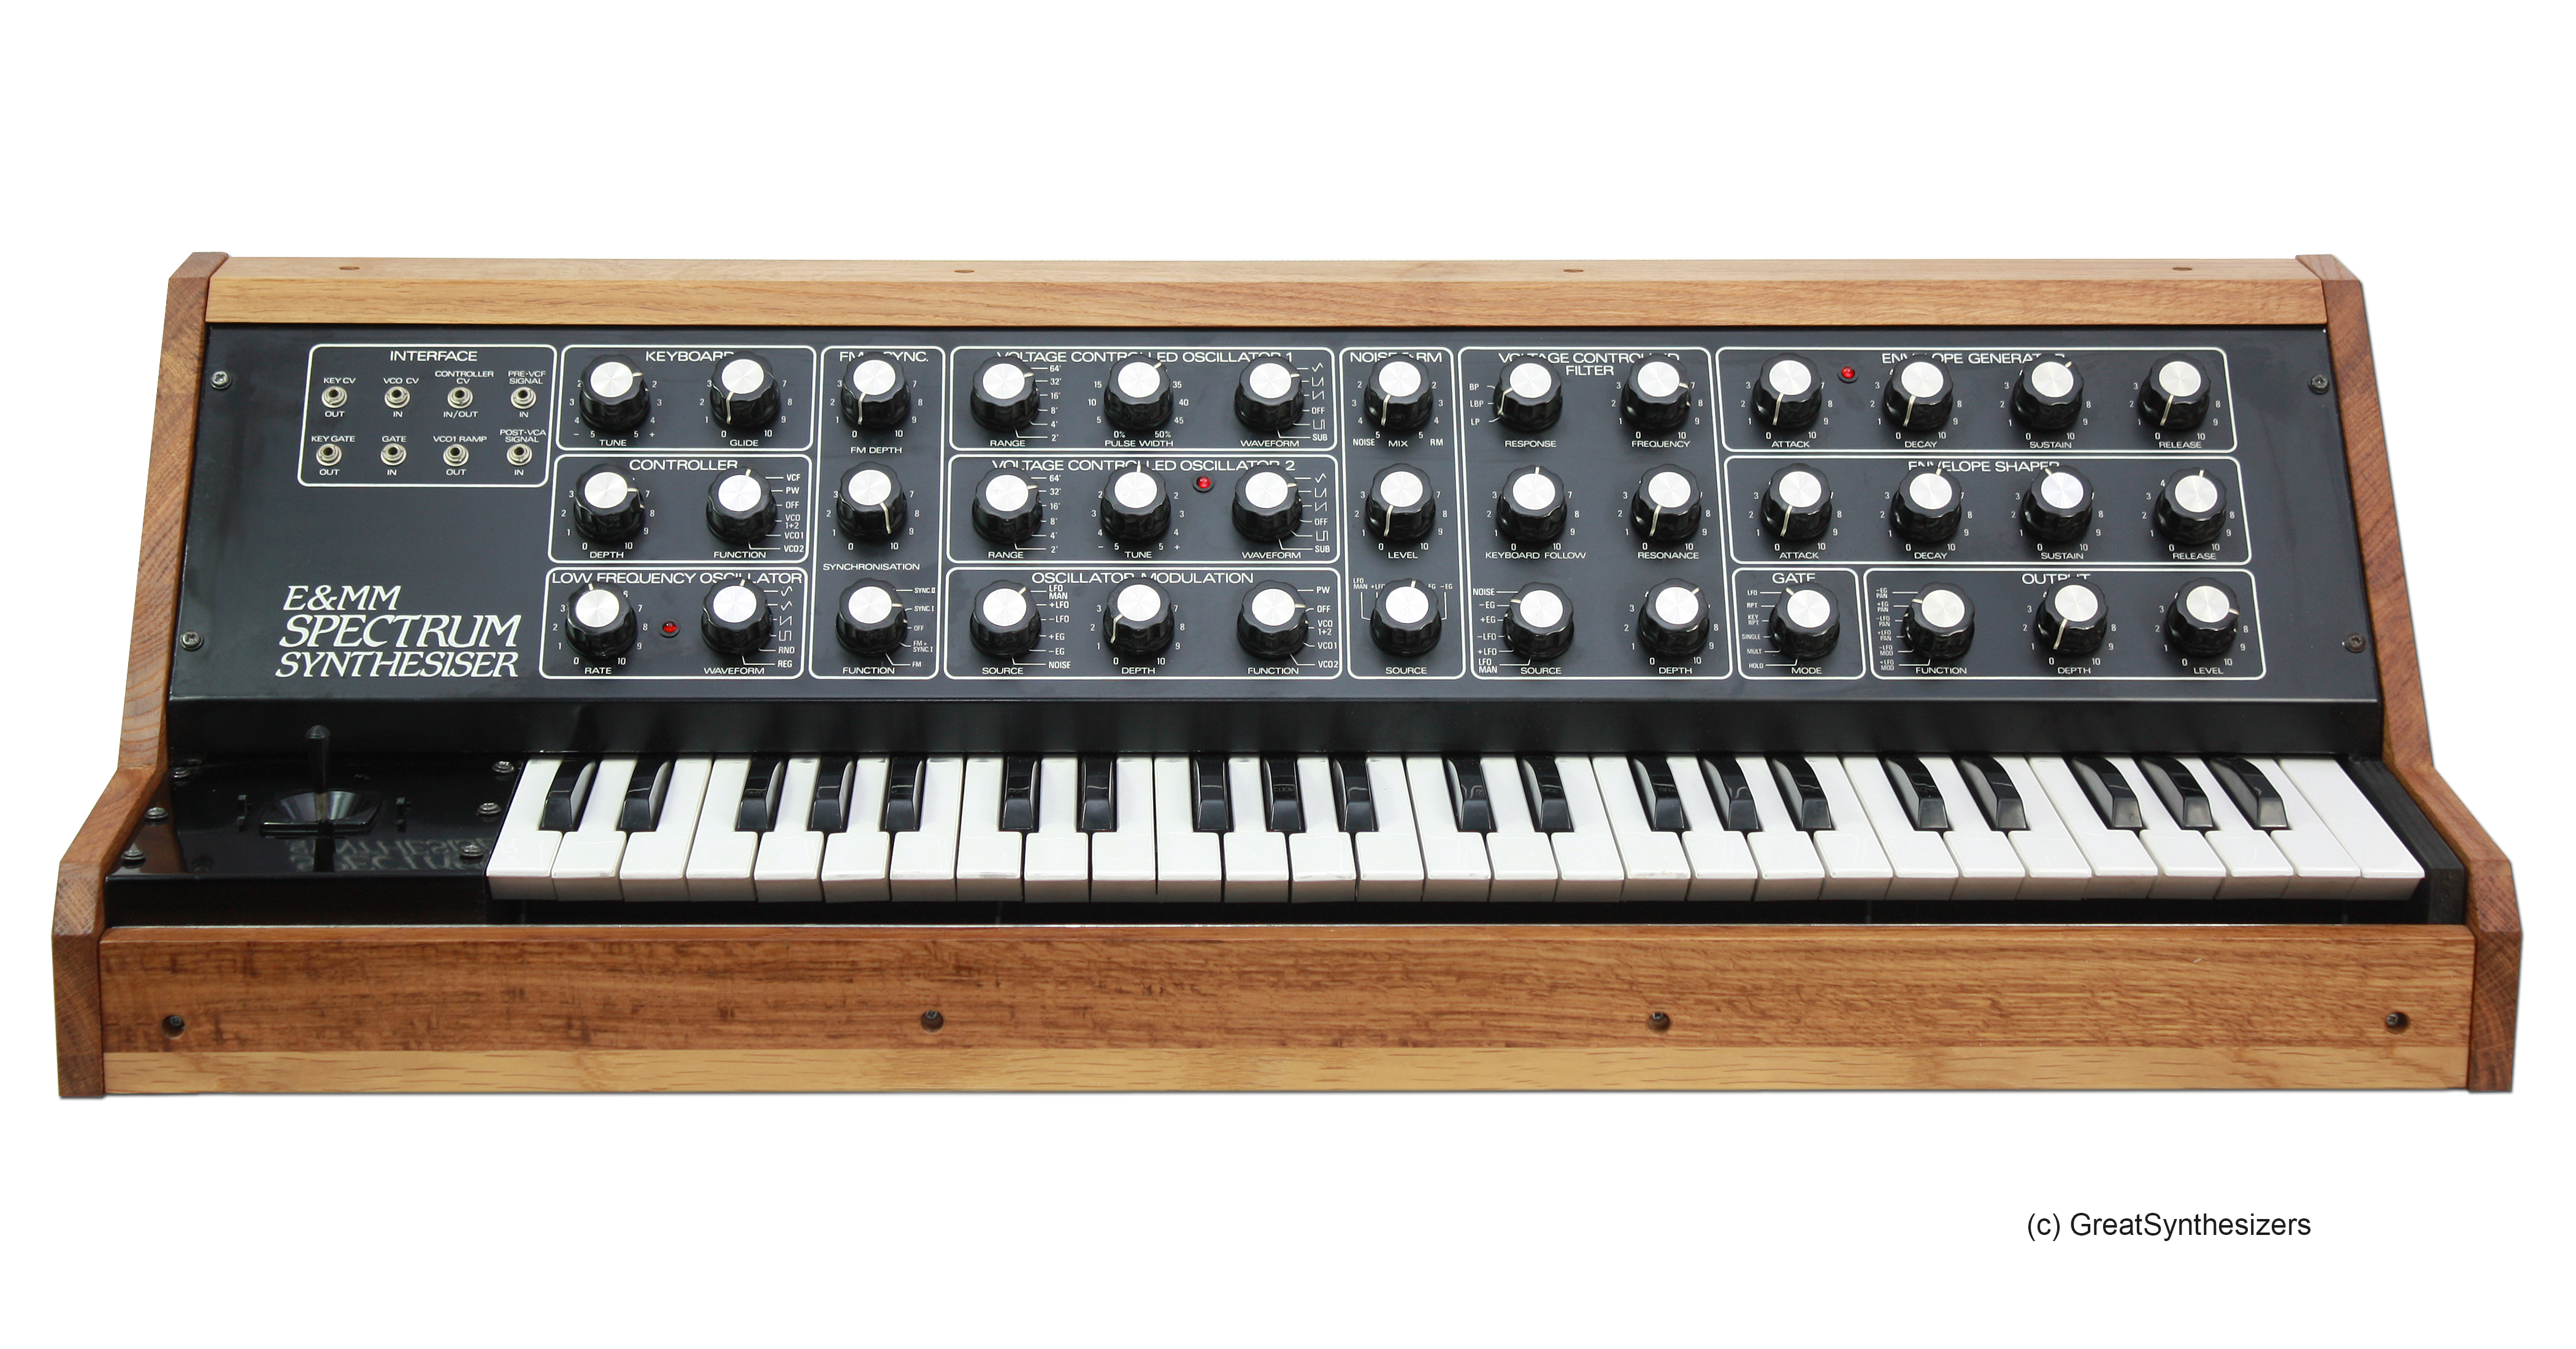 E&MM: The Spectrum Synthesiser – GreatSynthesizers